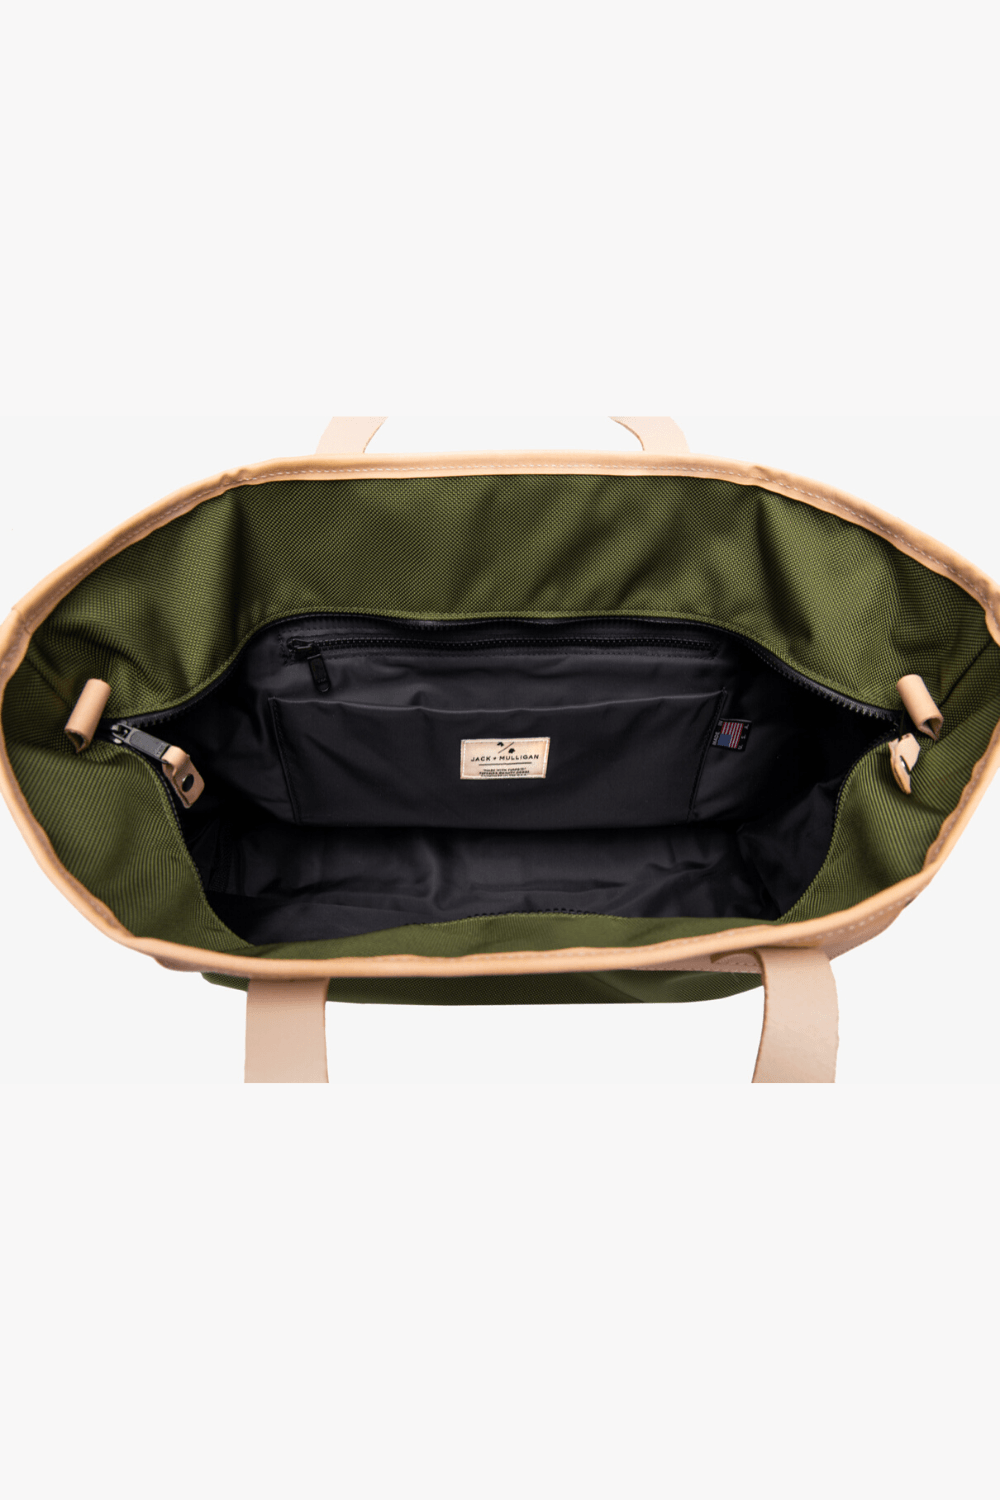 Pablo Tote - Forest Green Jack + Mulligan